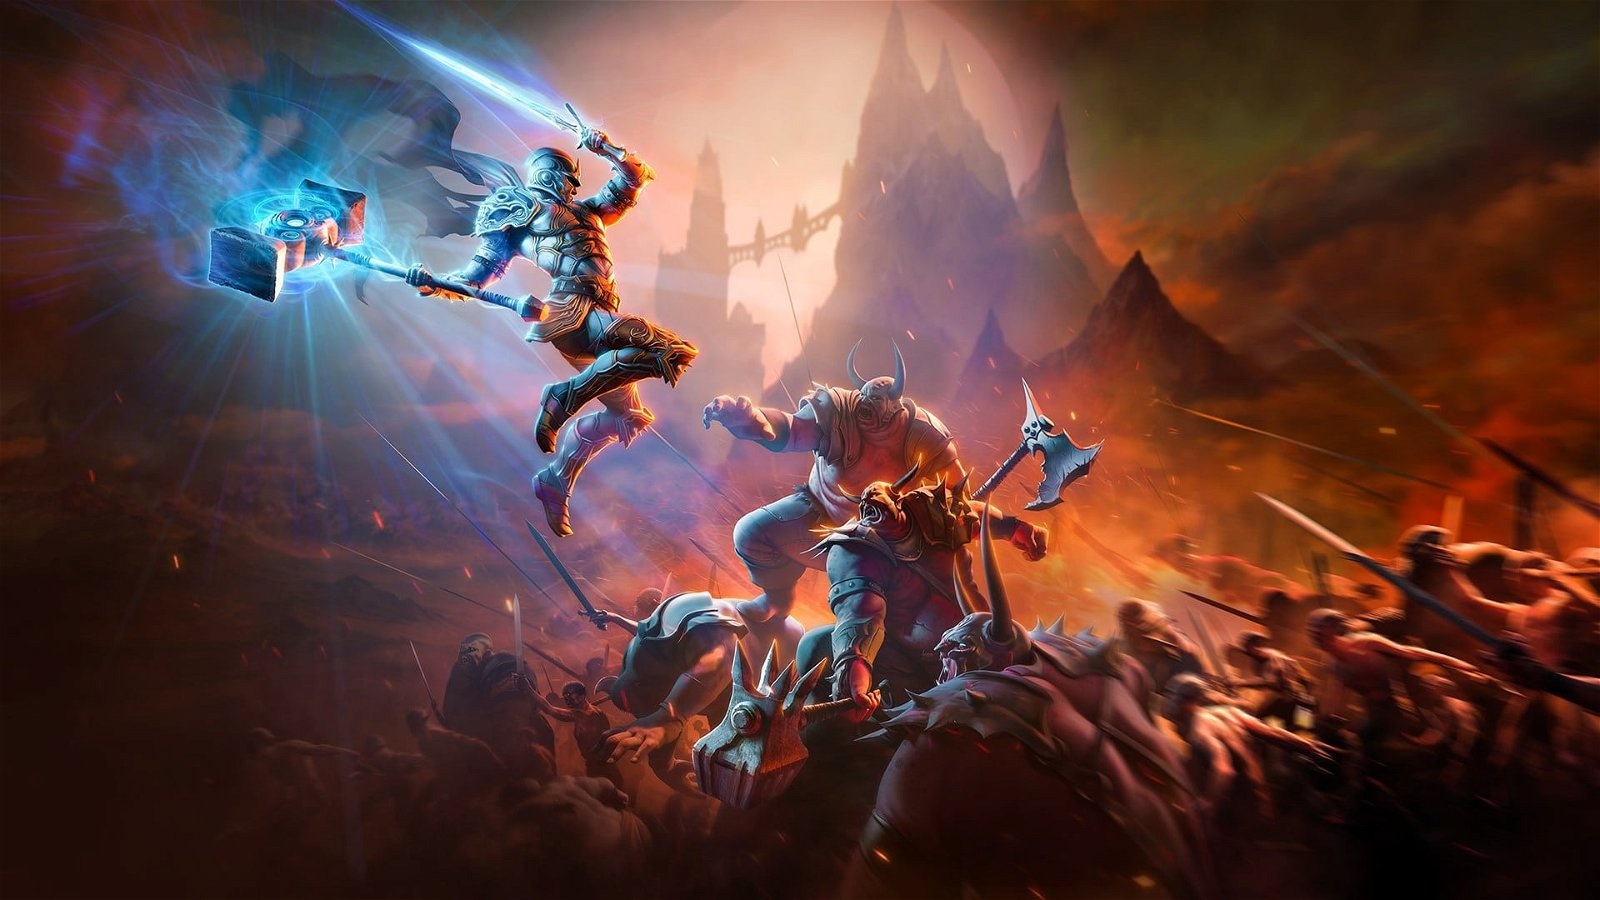 Kingdoms of Amalur: Re-Reckoning Confirmed for August 2020 Release 1